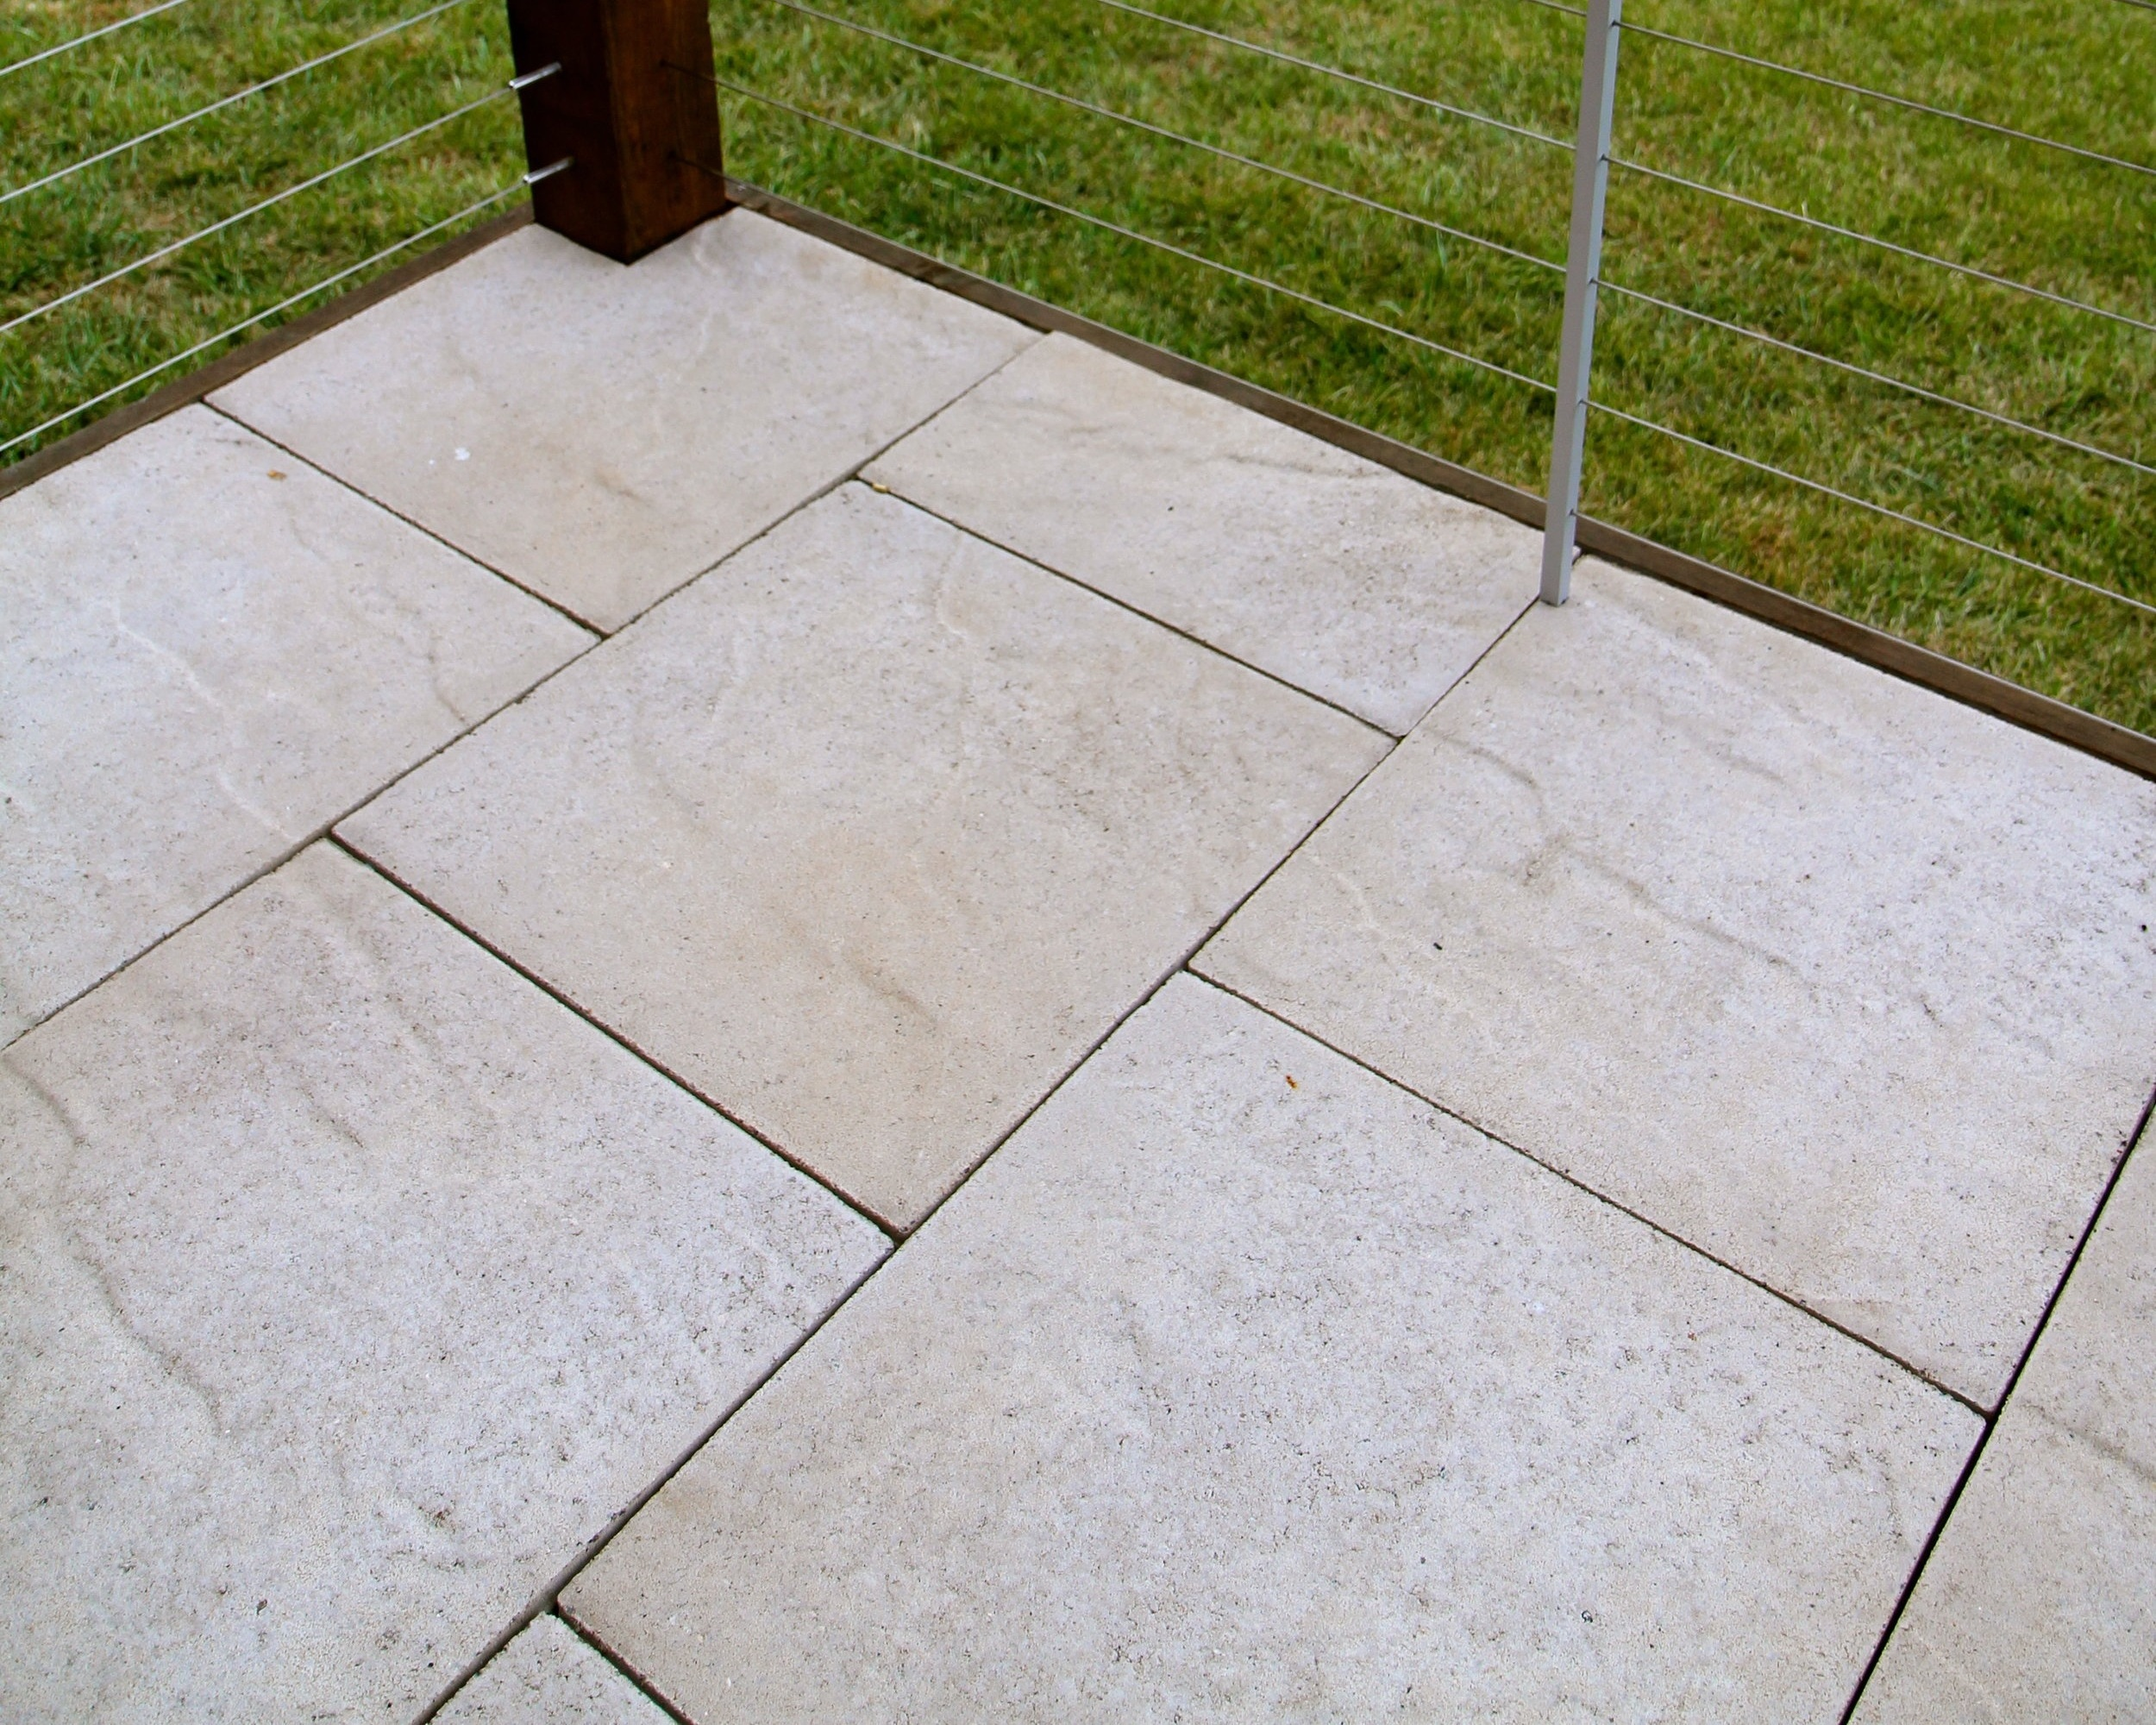 Concrete Decking - RockFace Concrete Decking